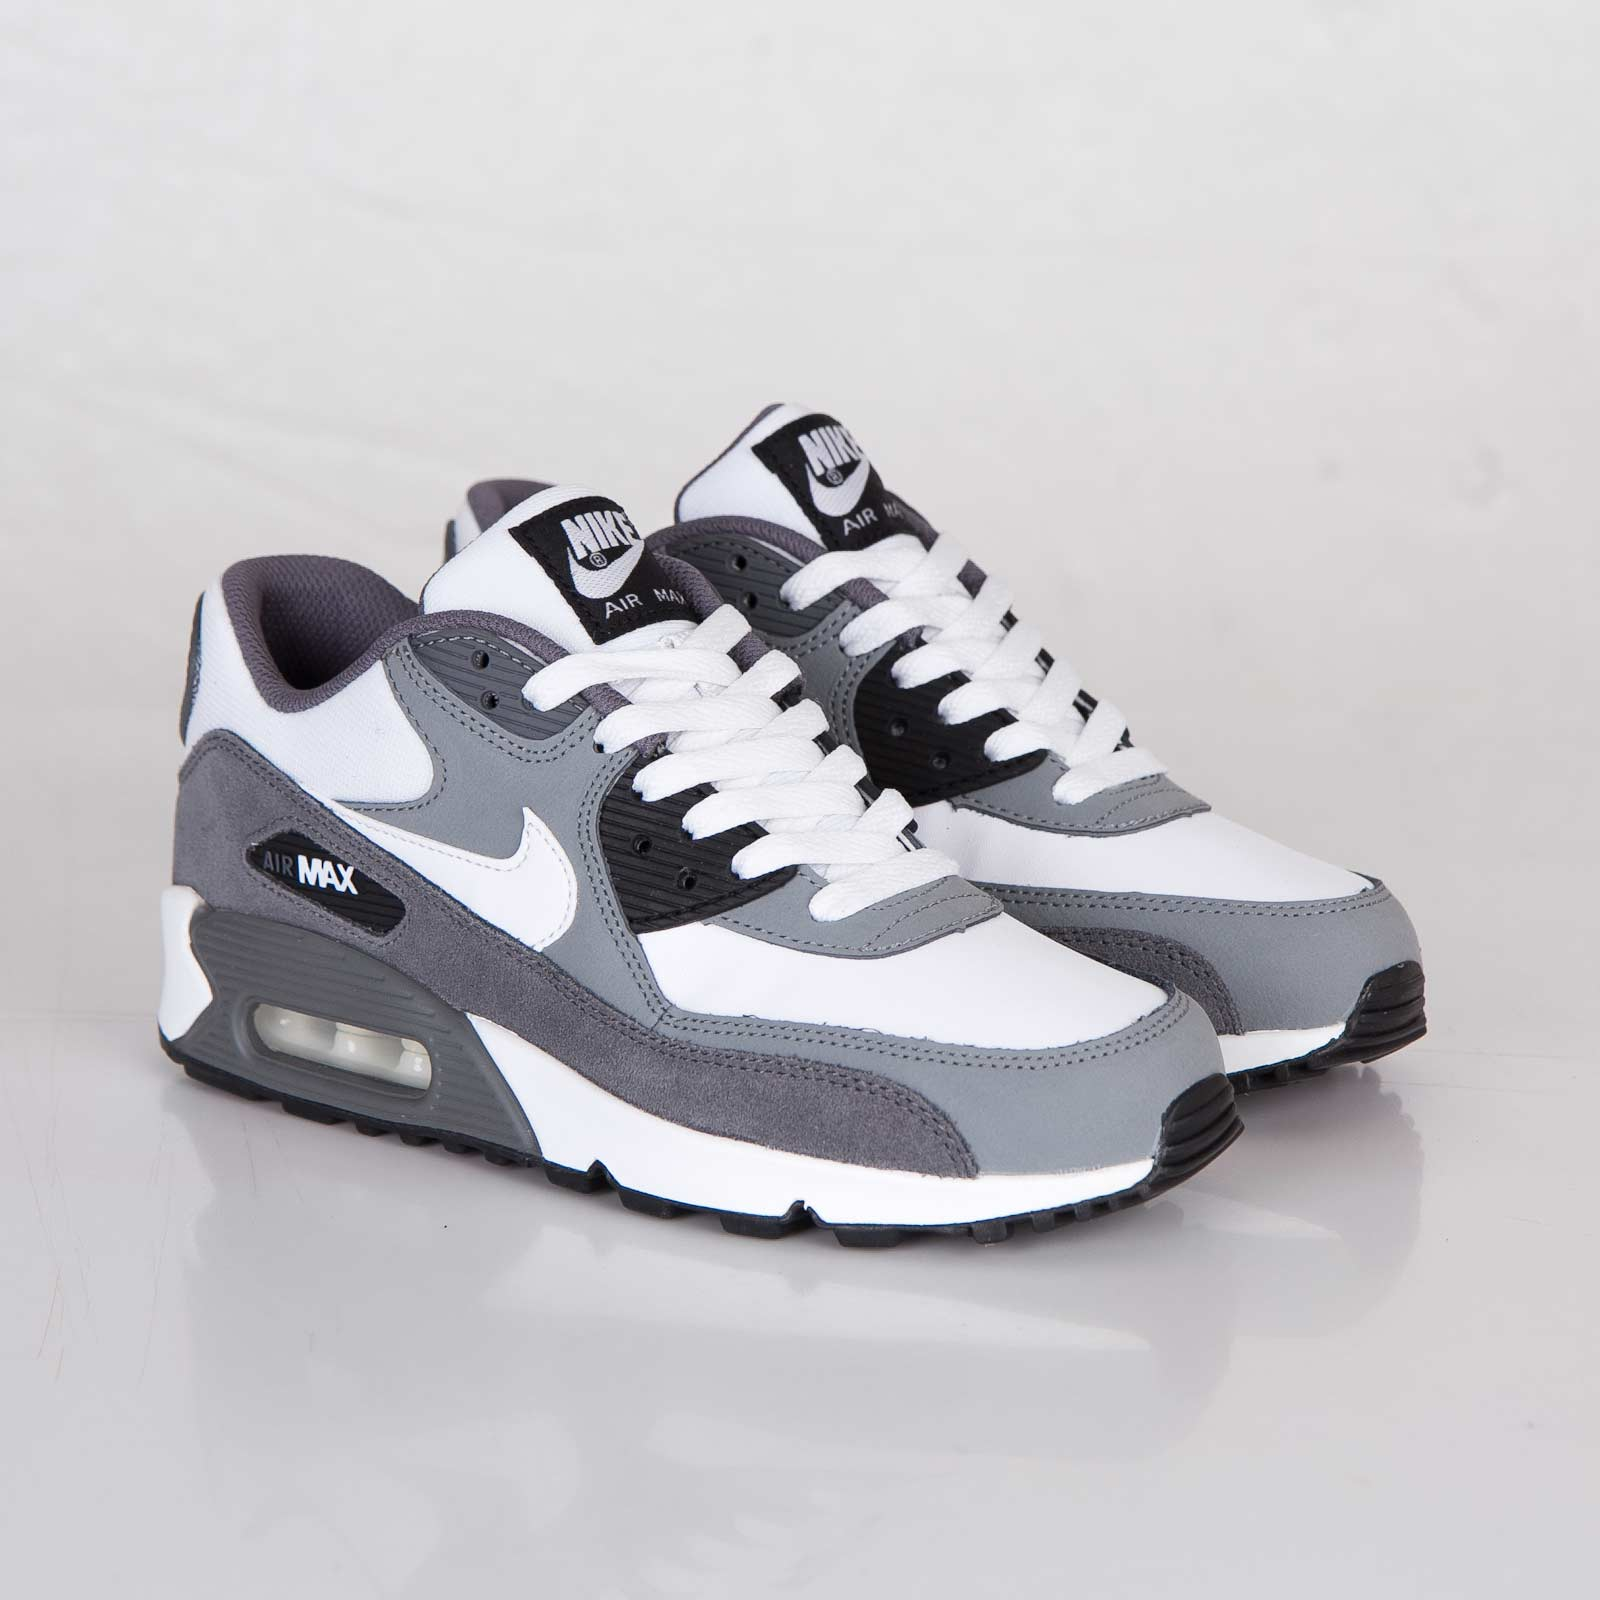 taille 40 4d8aa d50d9 Nike Air Max 90 (GS) - 307793-123 - Sneakersnstuff ...